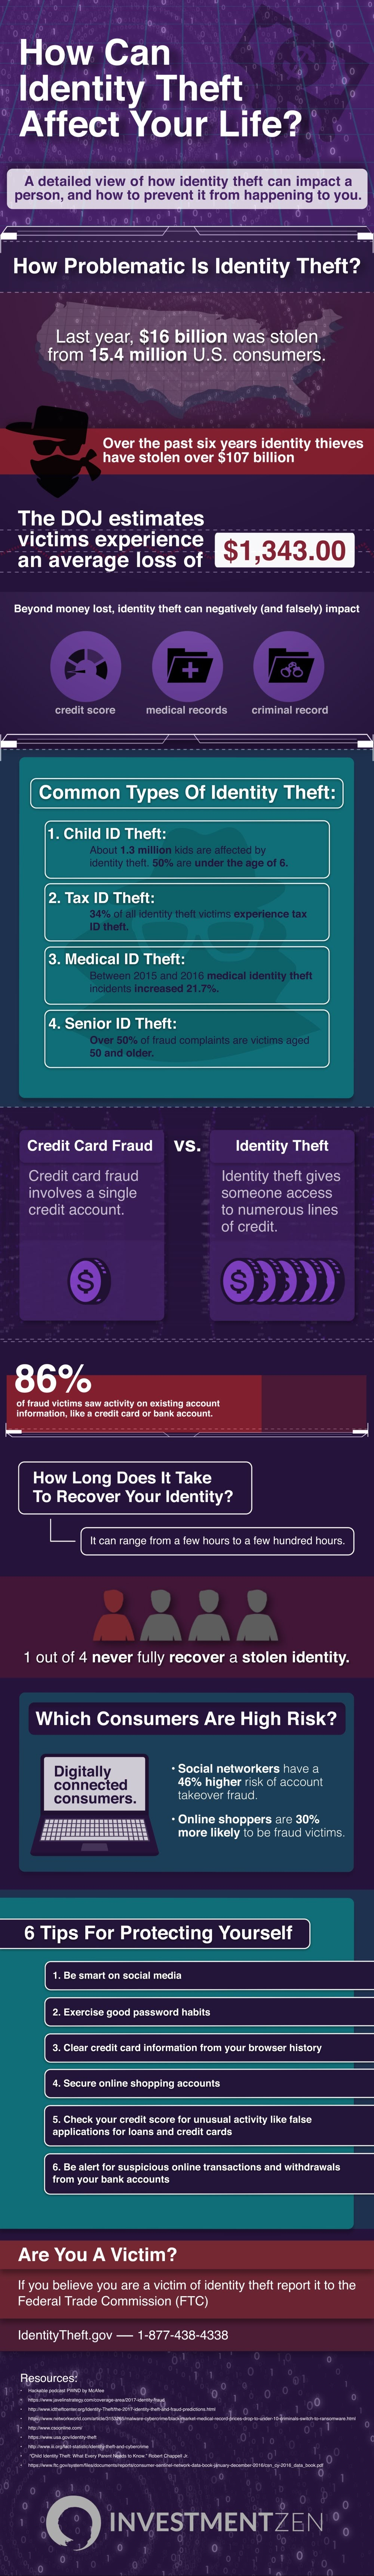 How Much can Identity Theft Affect Your Life?